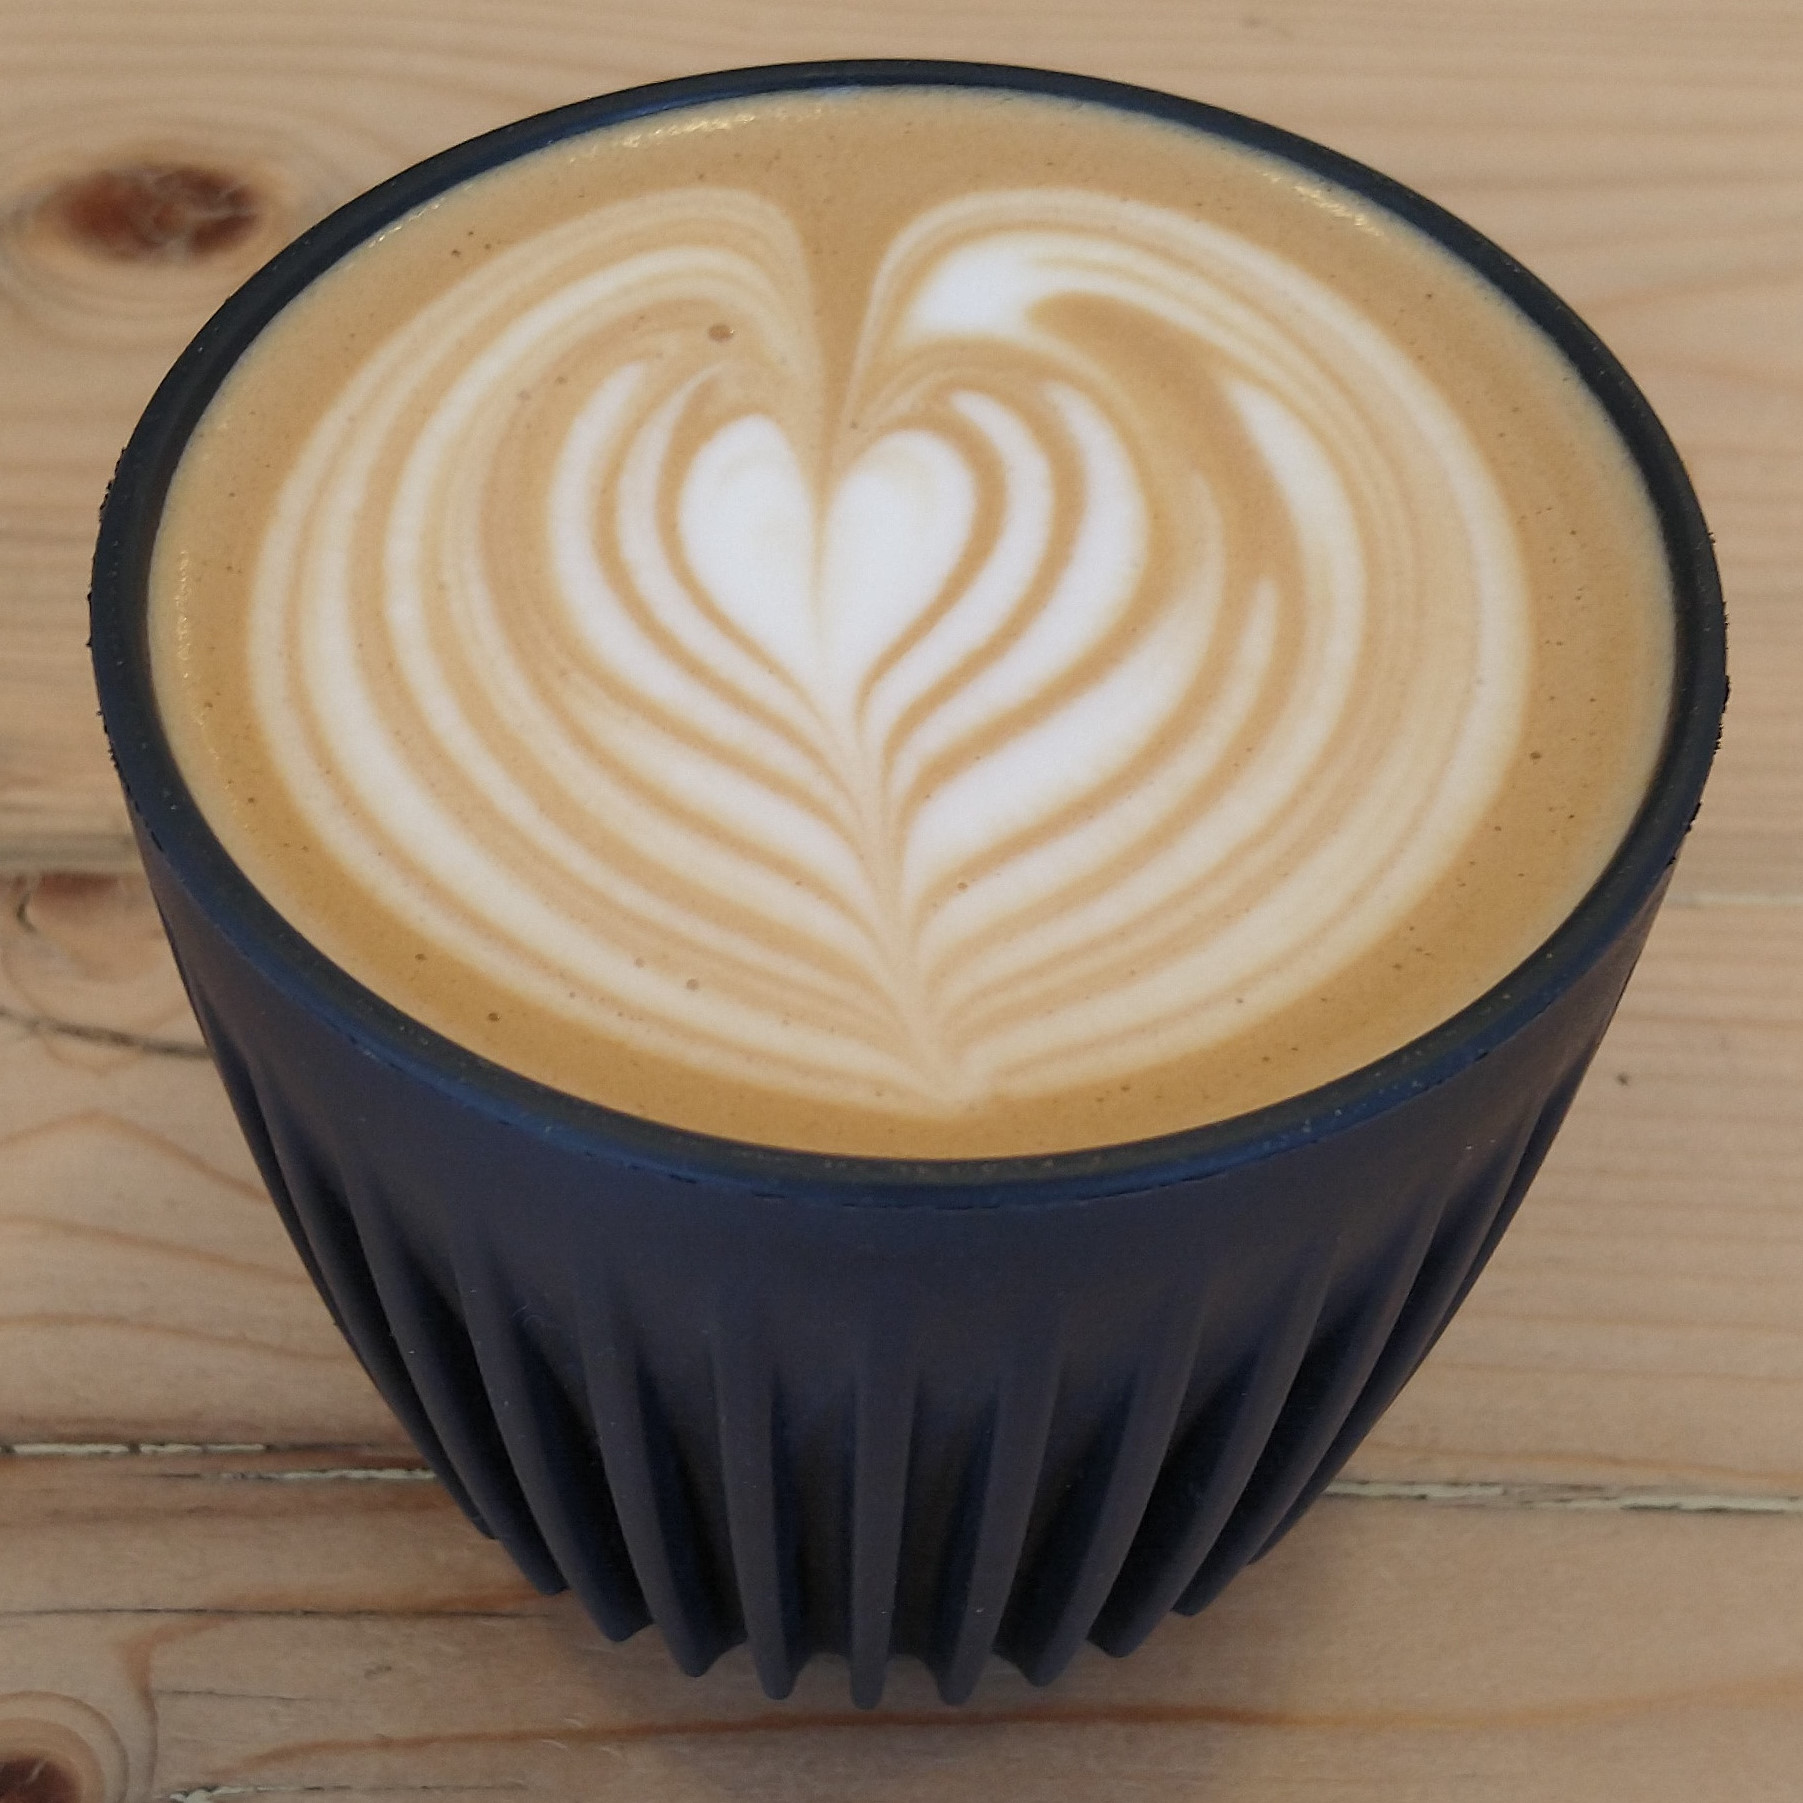 A flat white, made with the Arboretum Blend from Dark Woods and served in my HuskeeCup at Moss Coffee, Chester, one of the few times I've been able to use my own cup during COVID-19.